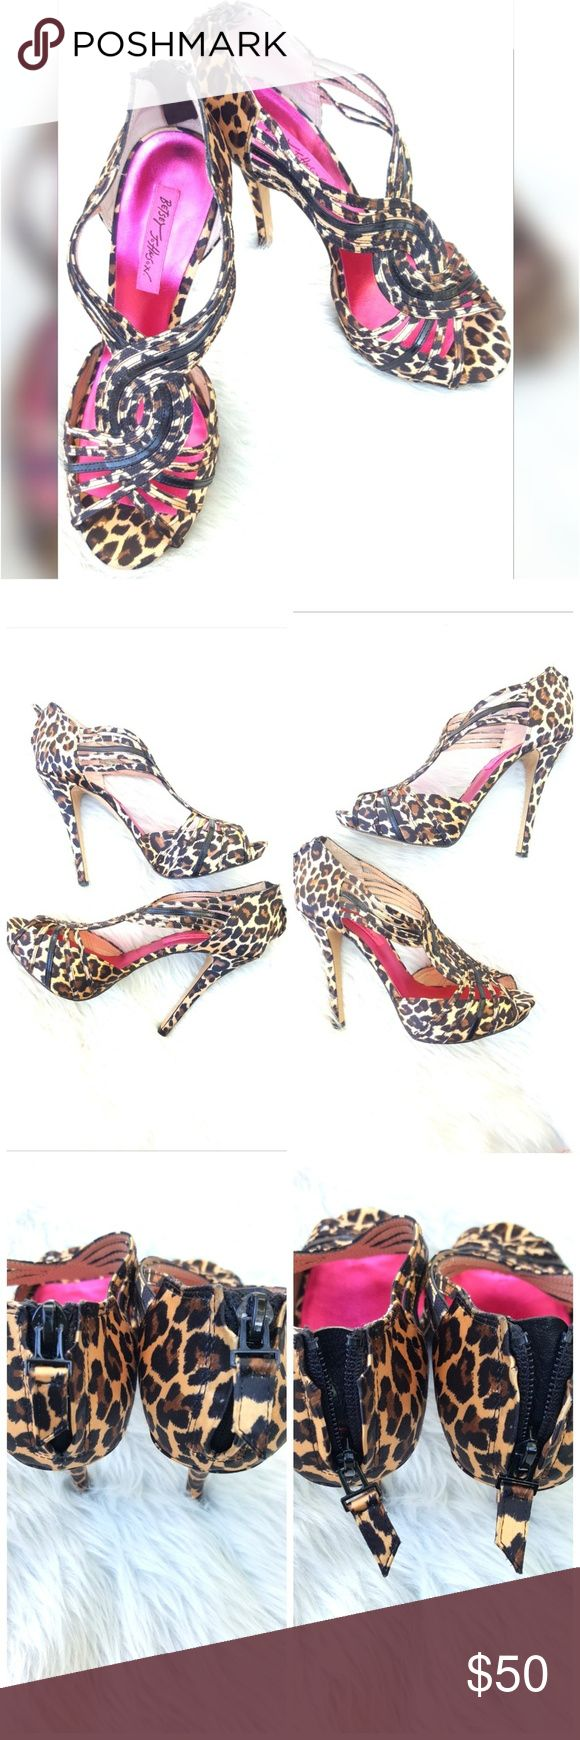 Betsey Johnson Cheetah Heels Gorgeous & sexy heels! Rock these beauties on a date night or a night out with the girl's! Betsey Johnson Shoes Heels